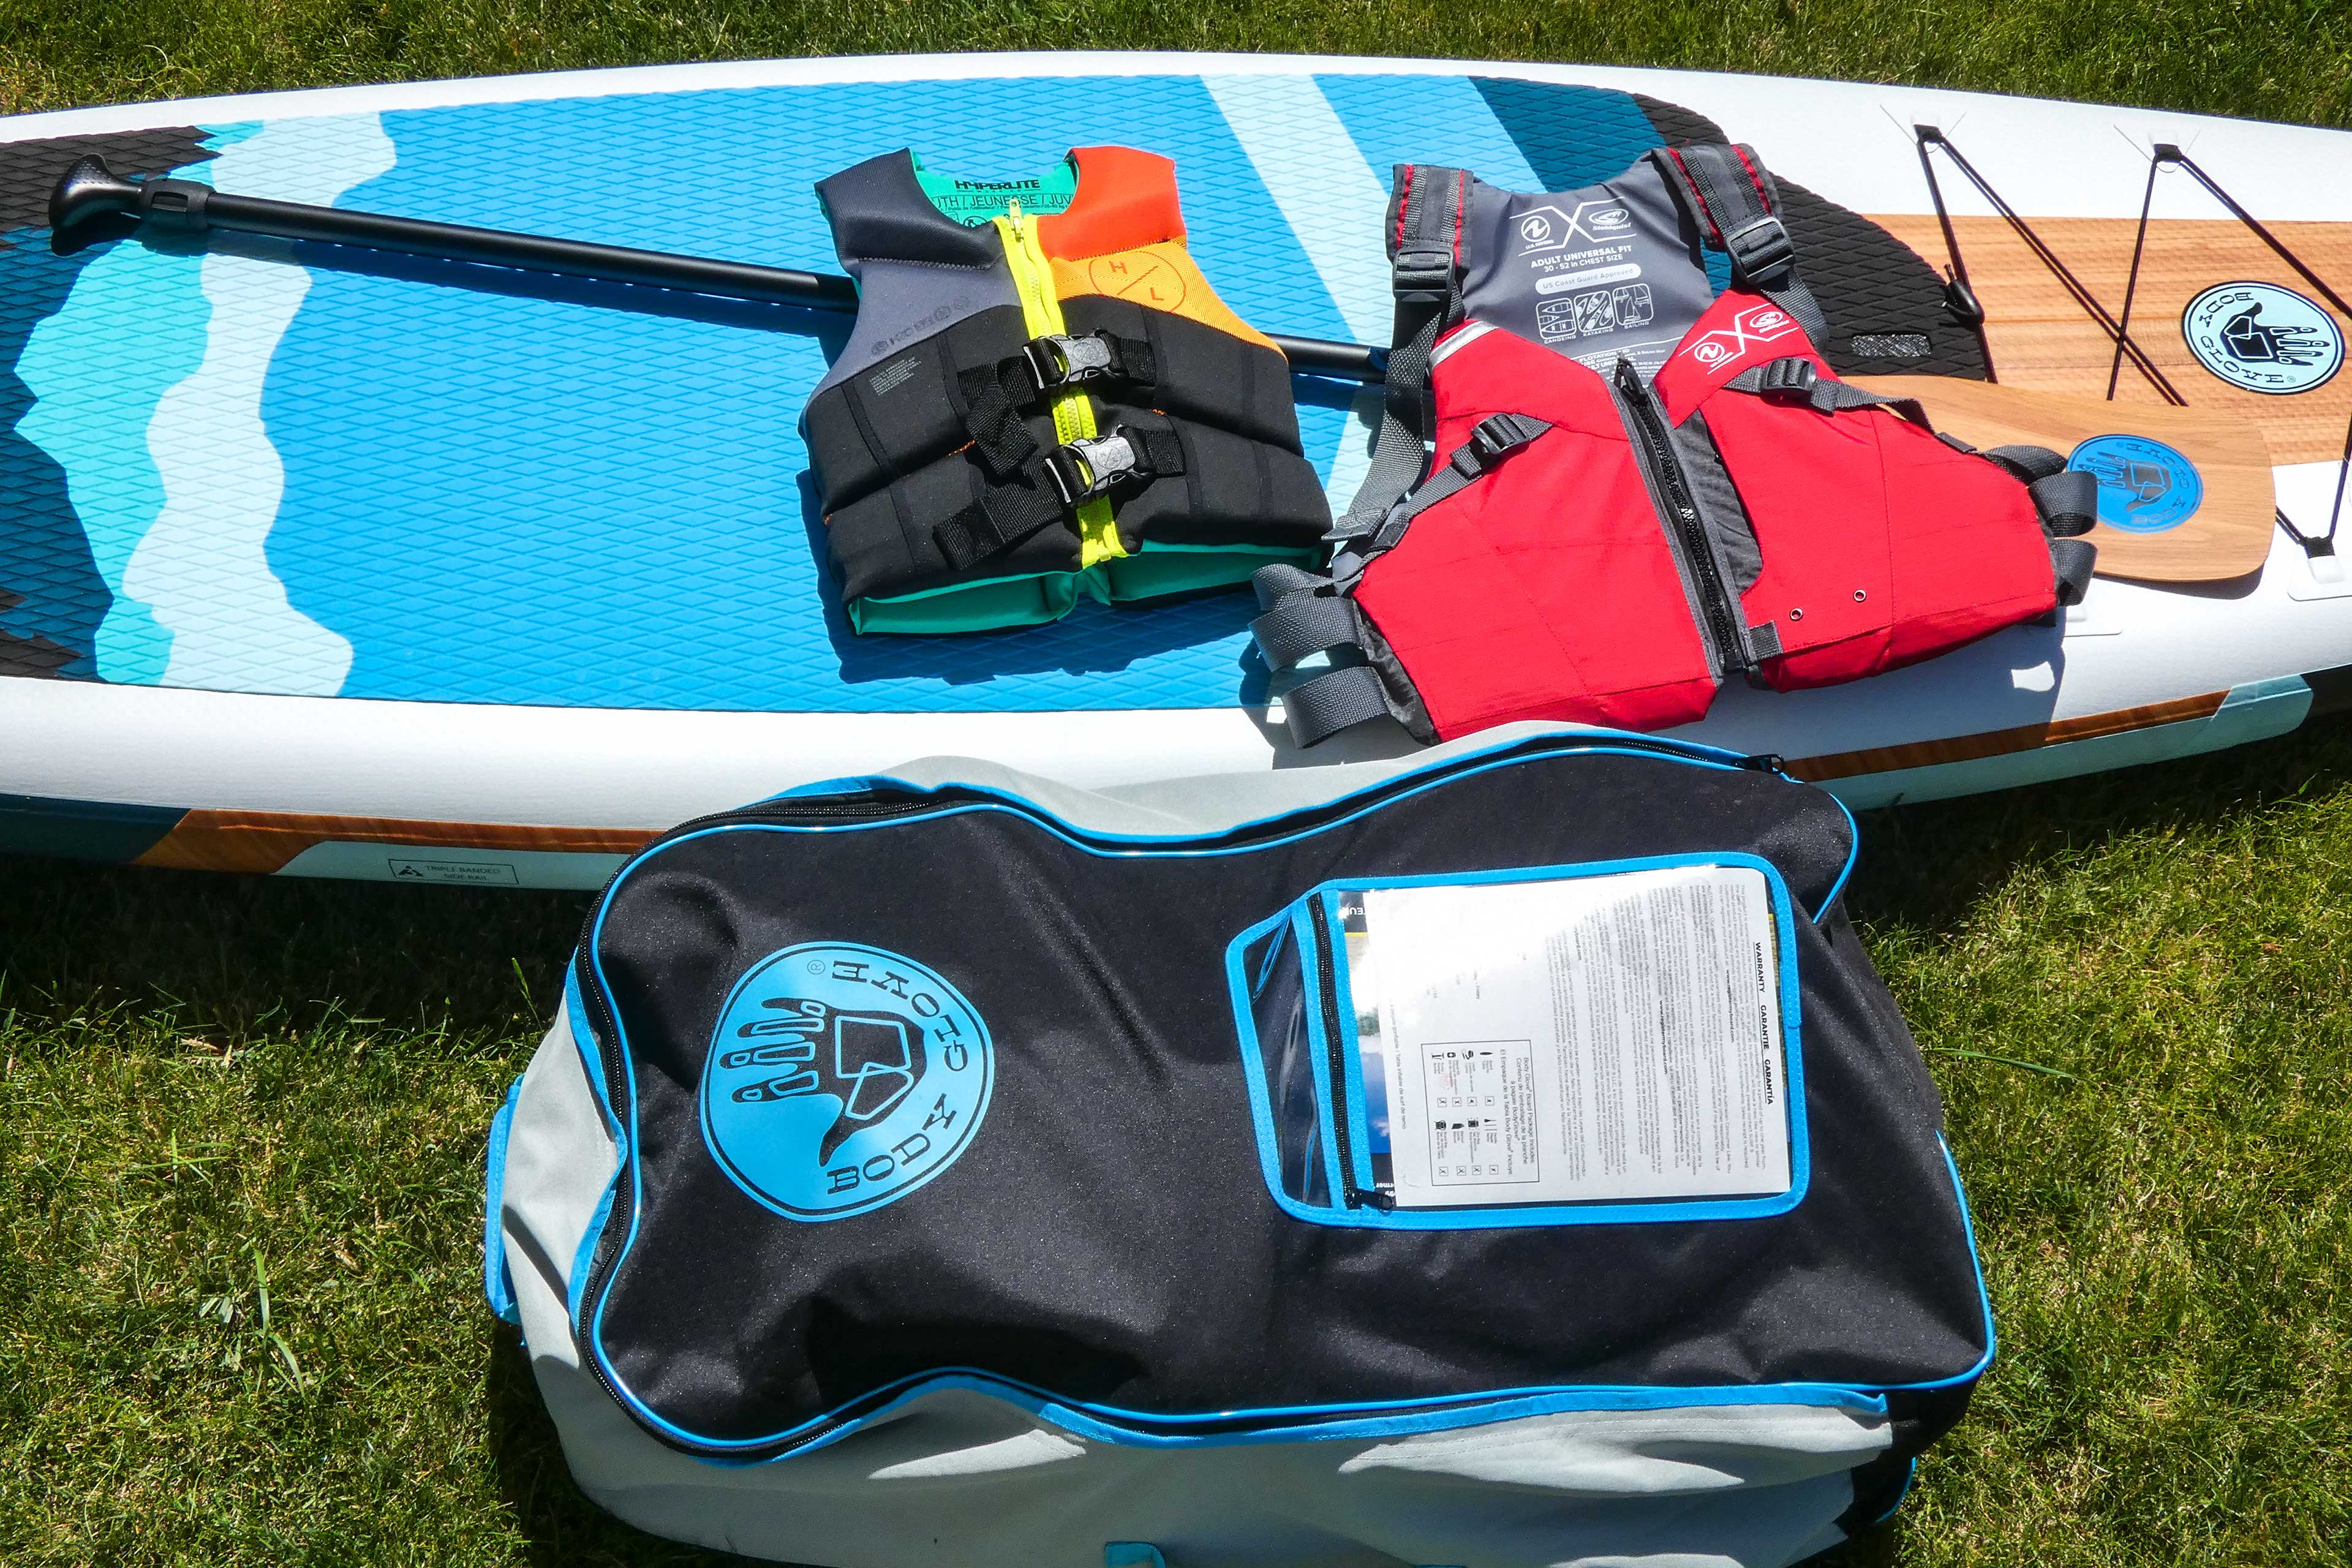 Take the SUP out for a spin!